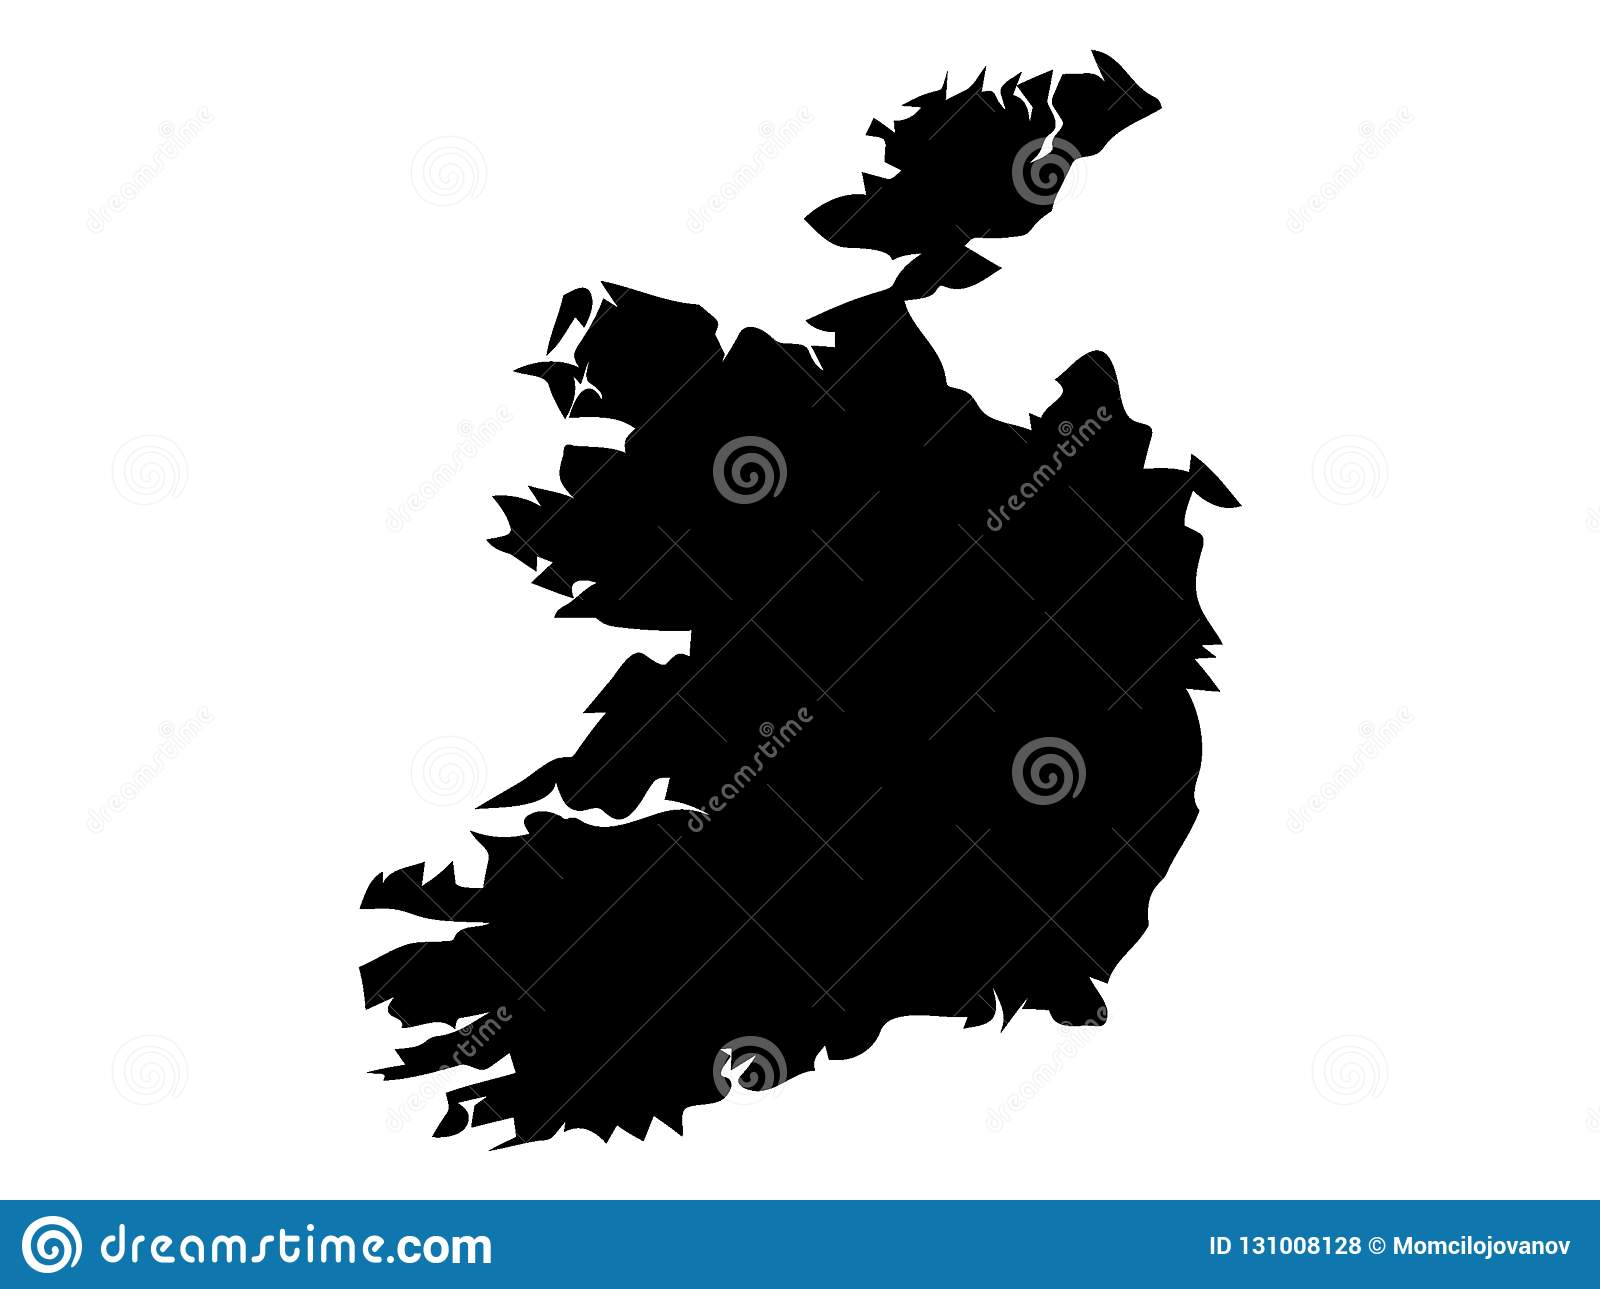 Map Of Ireland Vector.Black Map Of Ireland Stock Vector Illustration Of Netherlands